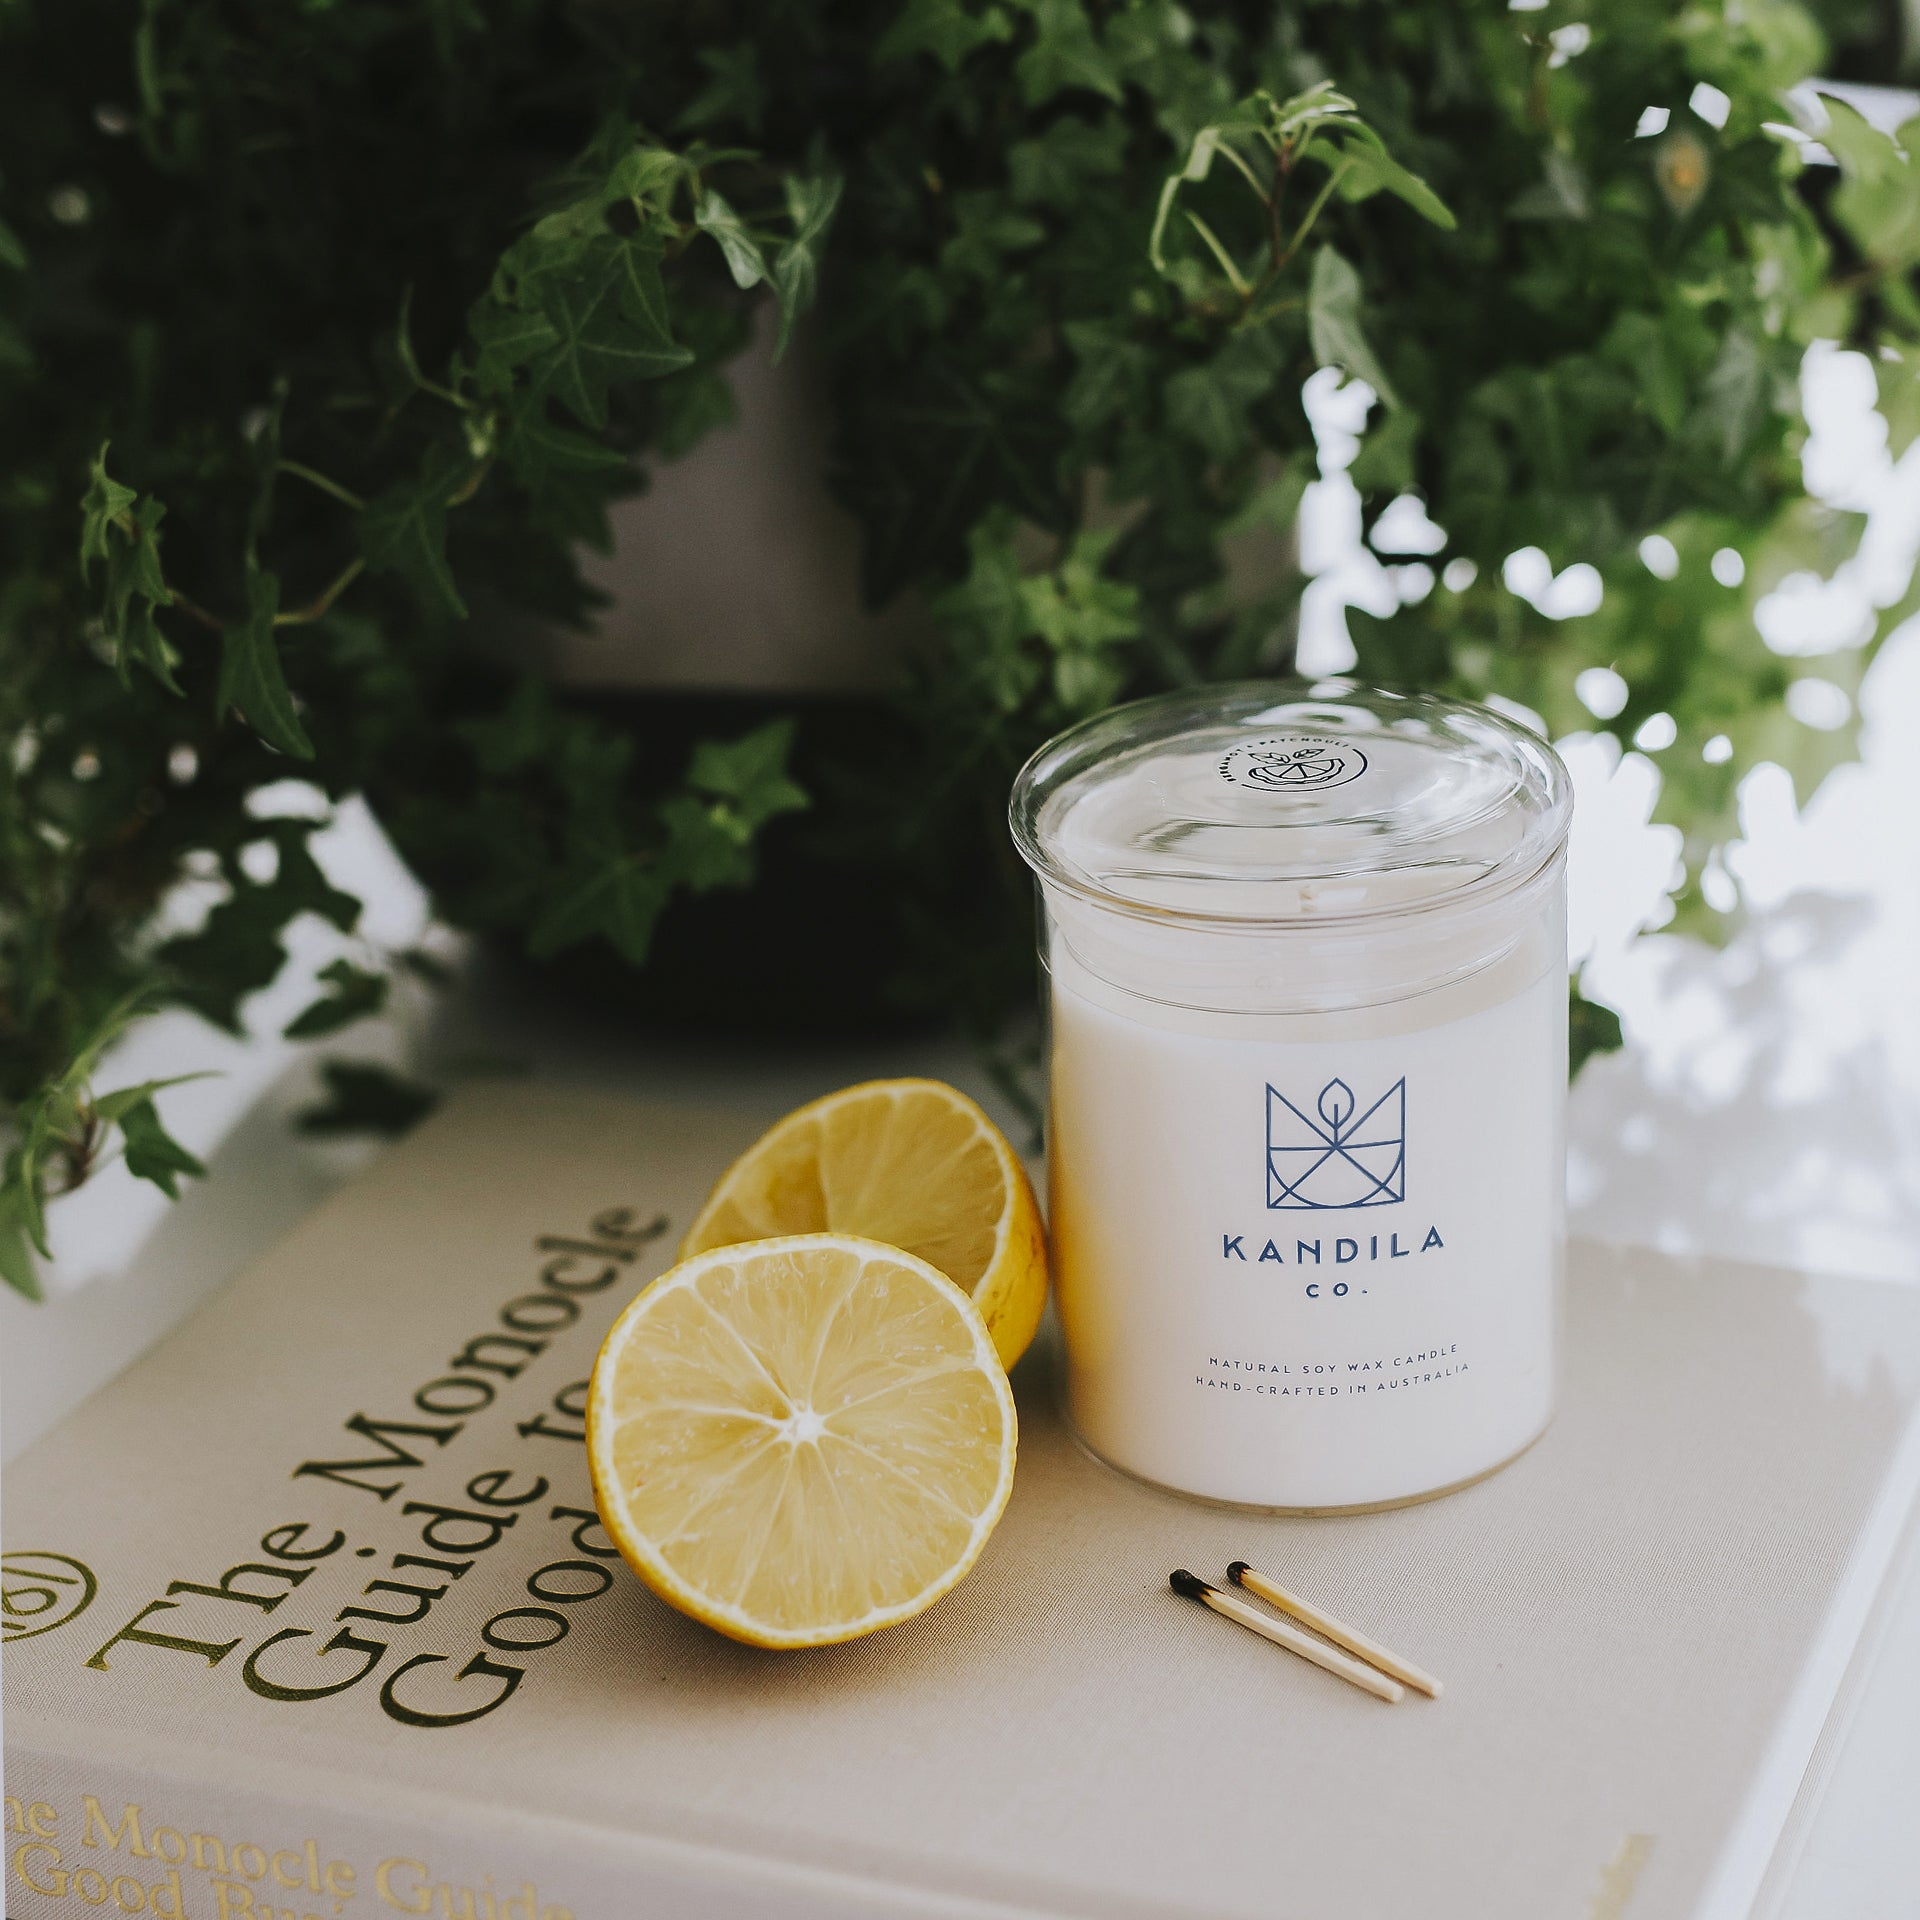 Kandila Company Bergamot and Patchouli Natural Vegan Soy Candle Melbourne Australia